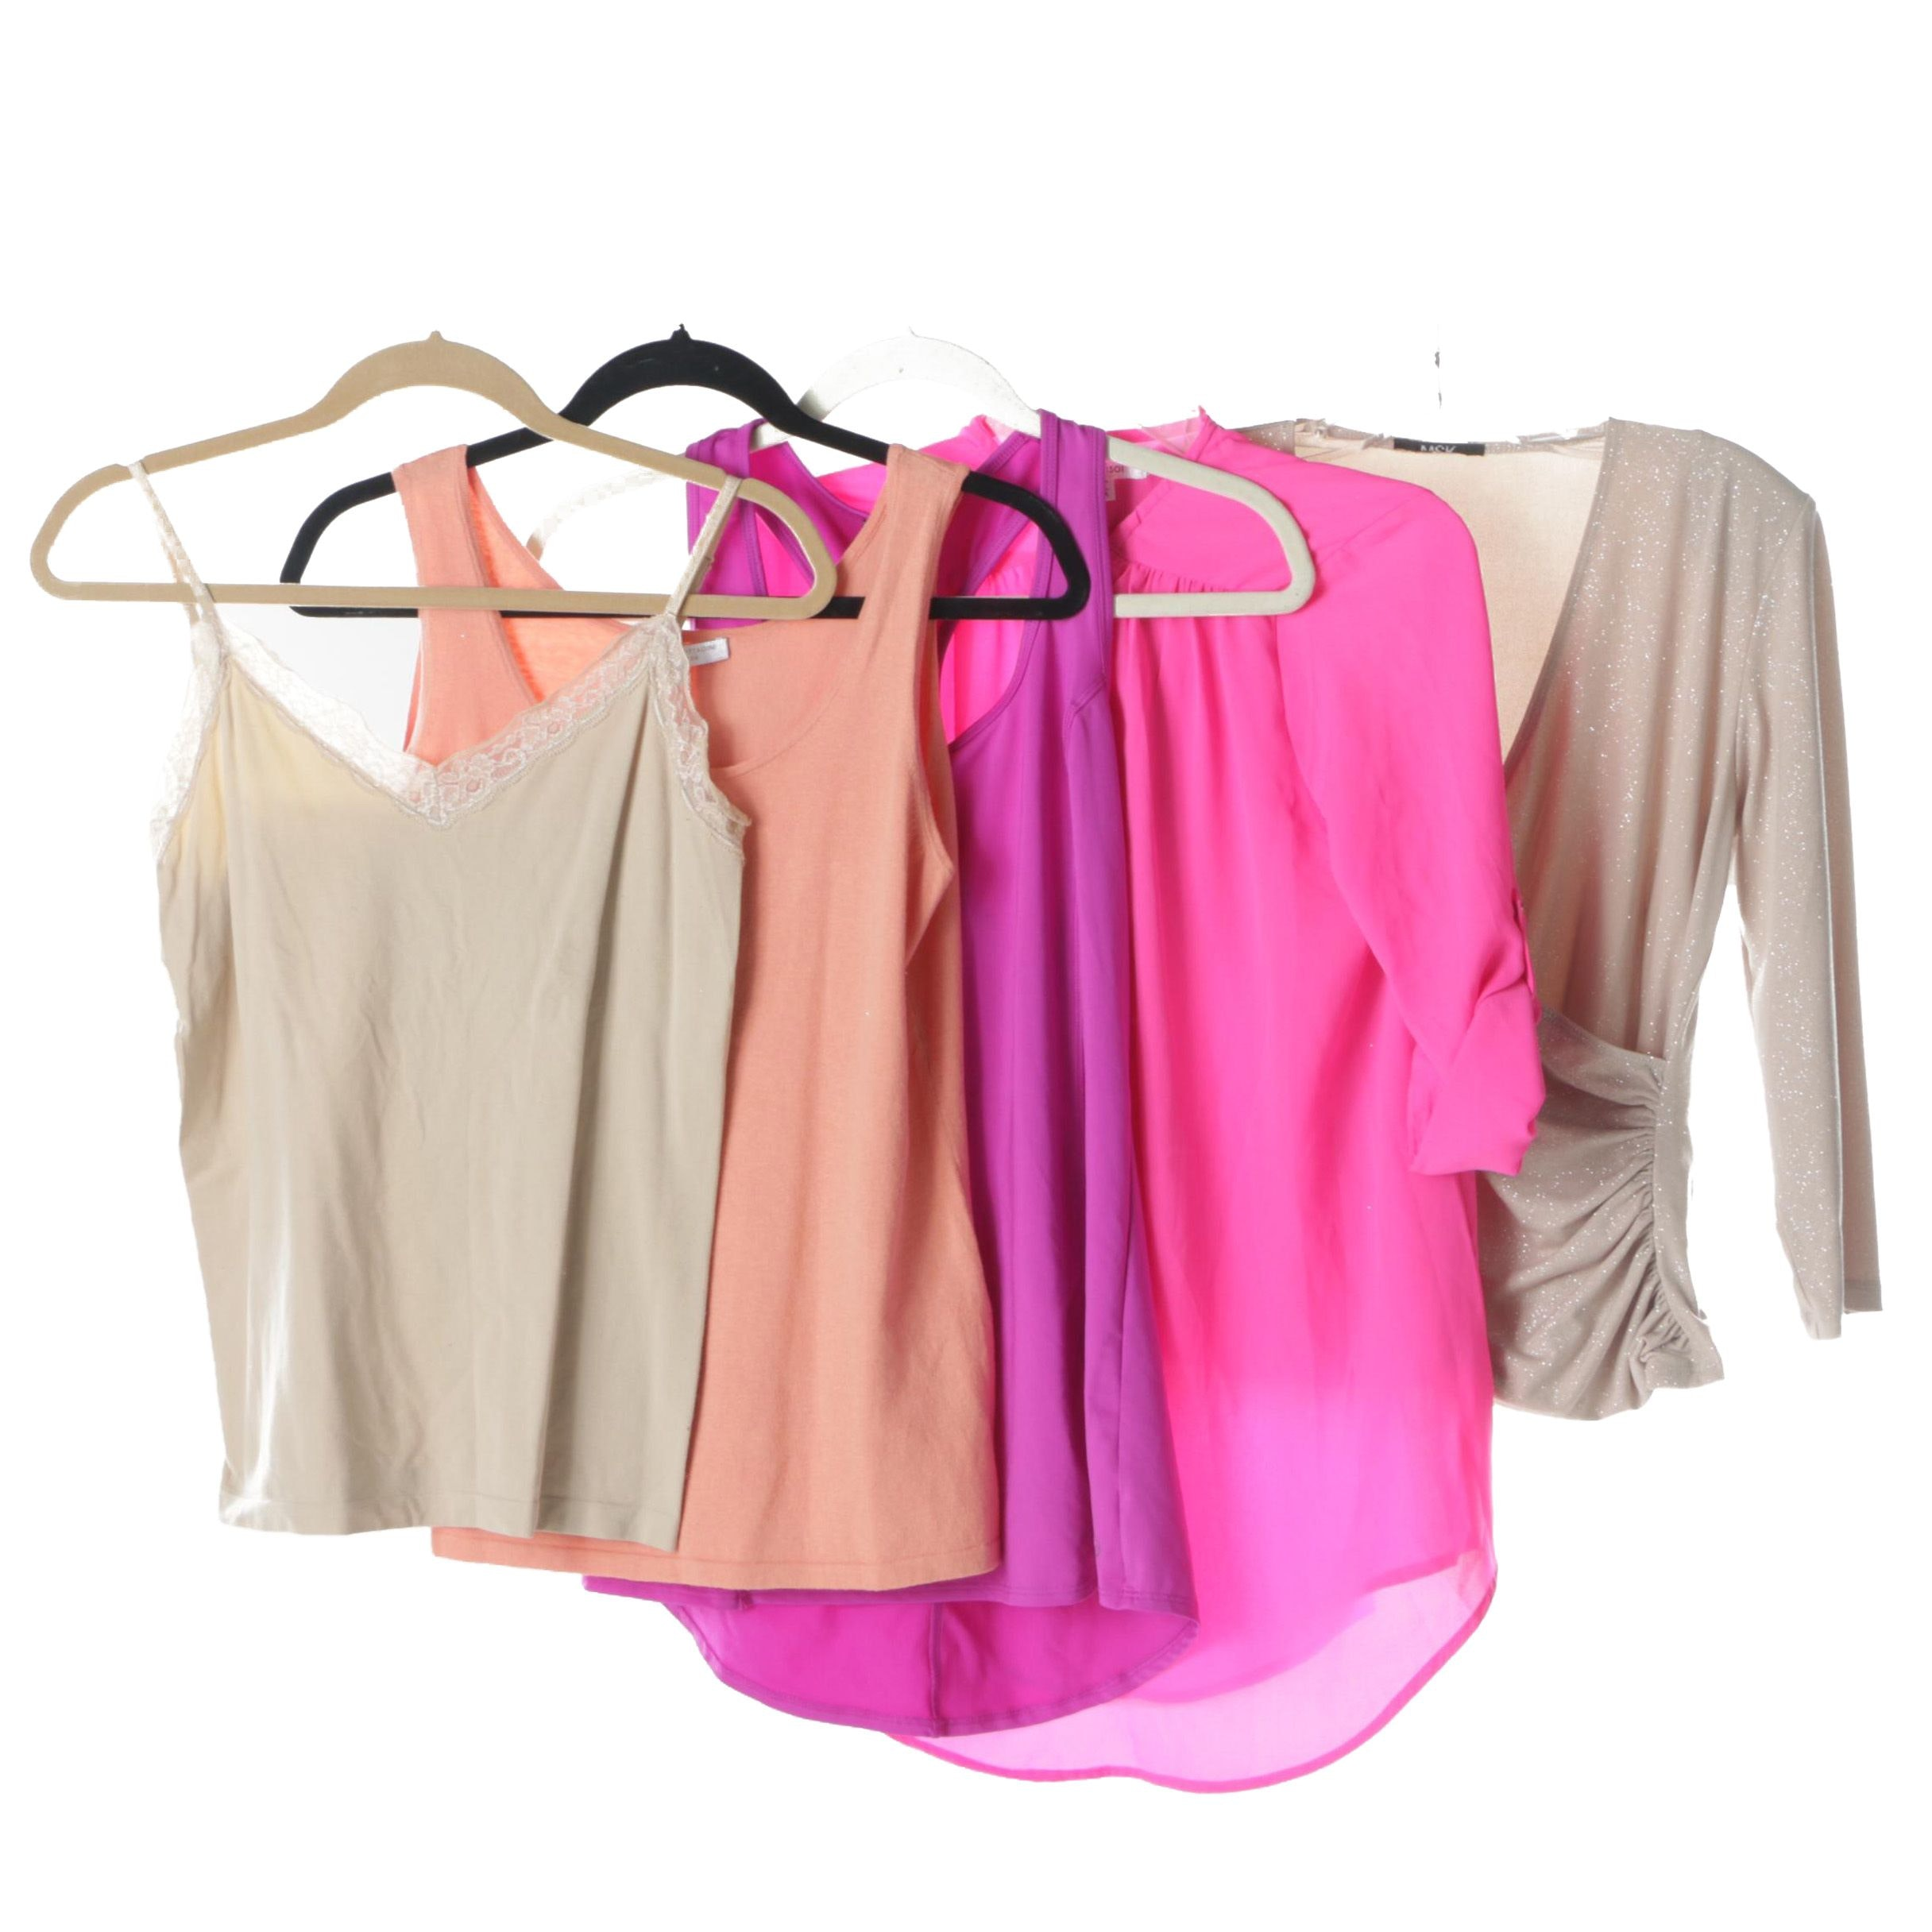 Women's Shirts Including Adrienne Vittadini